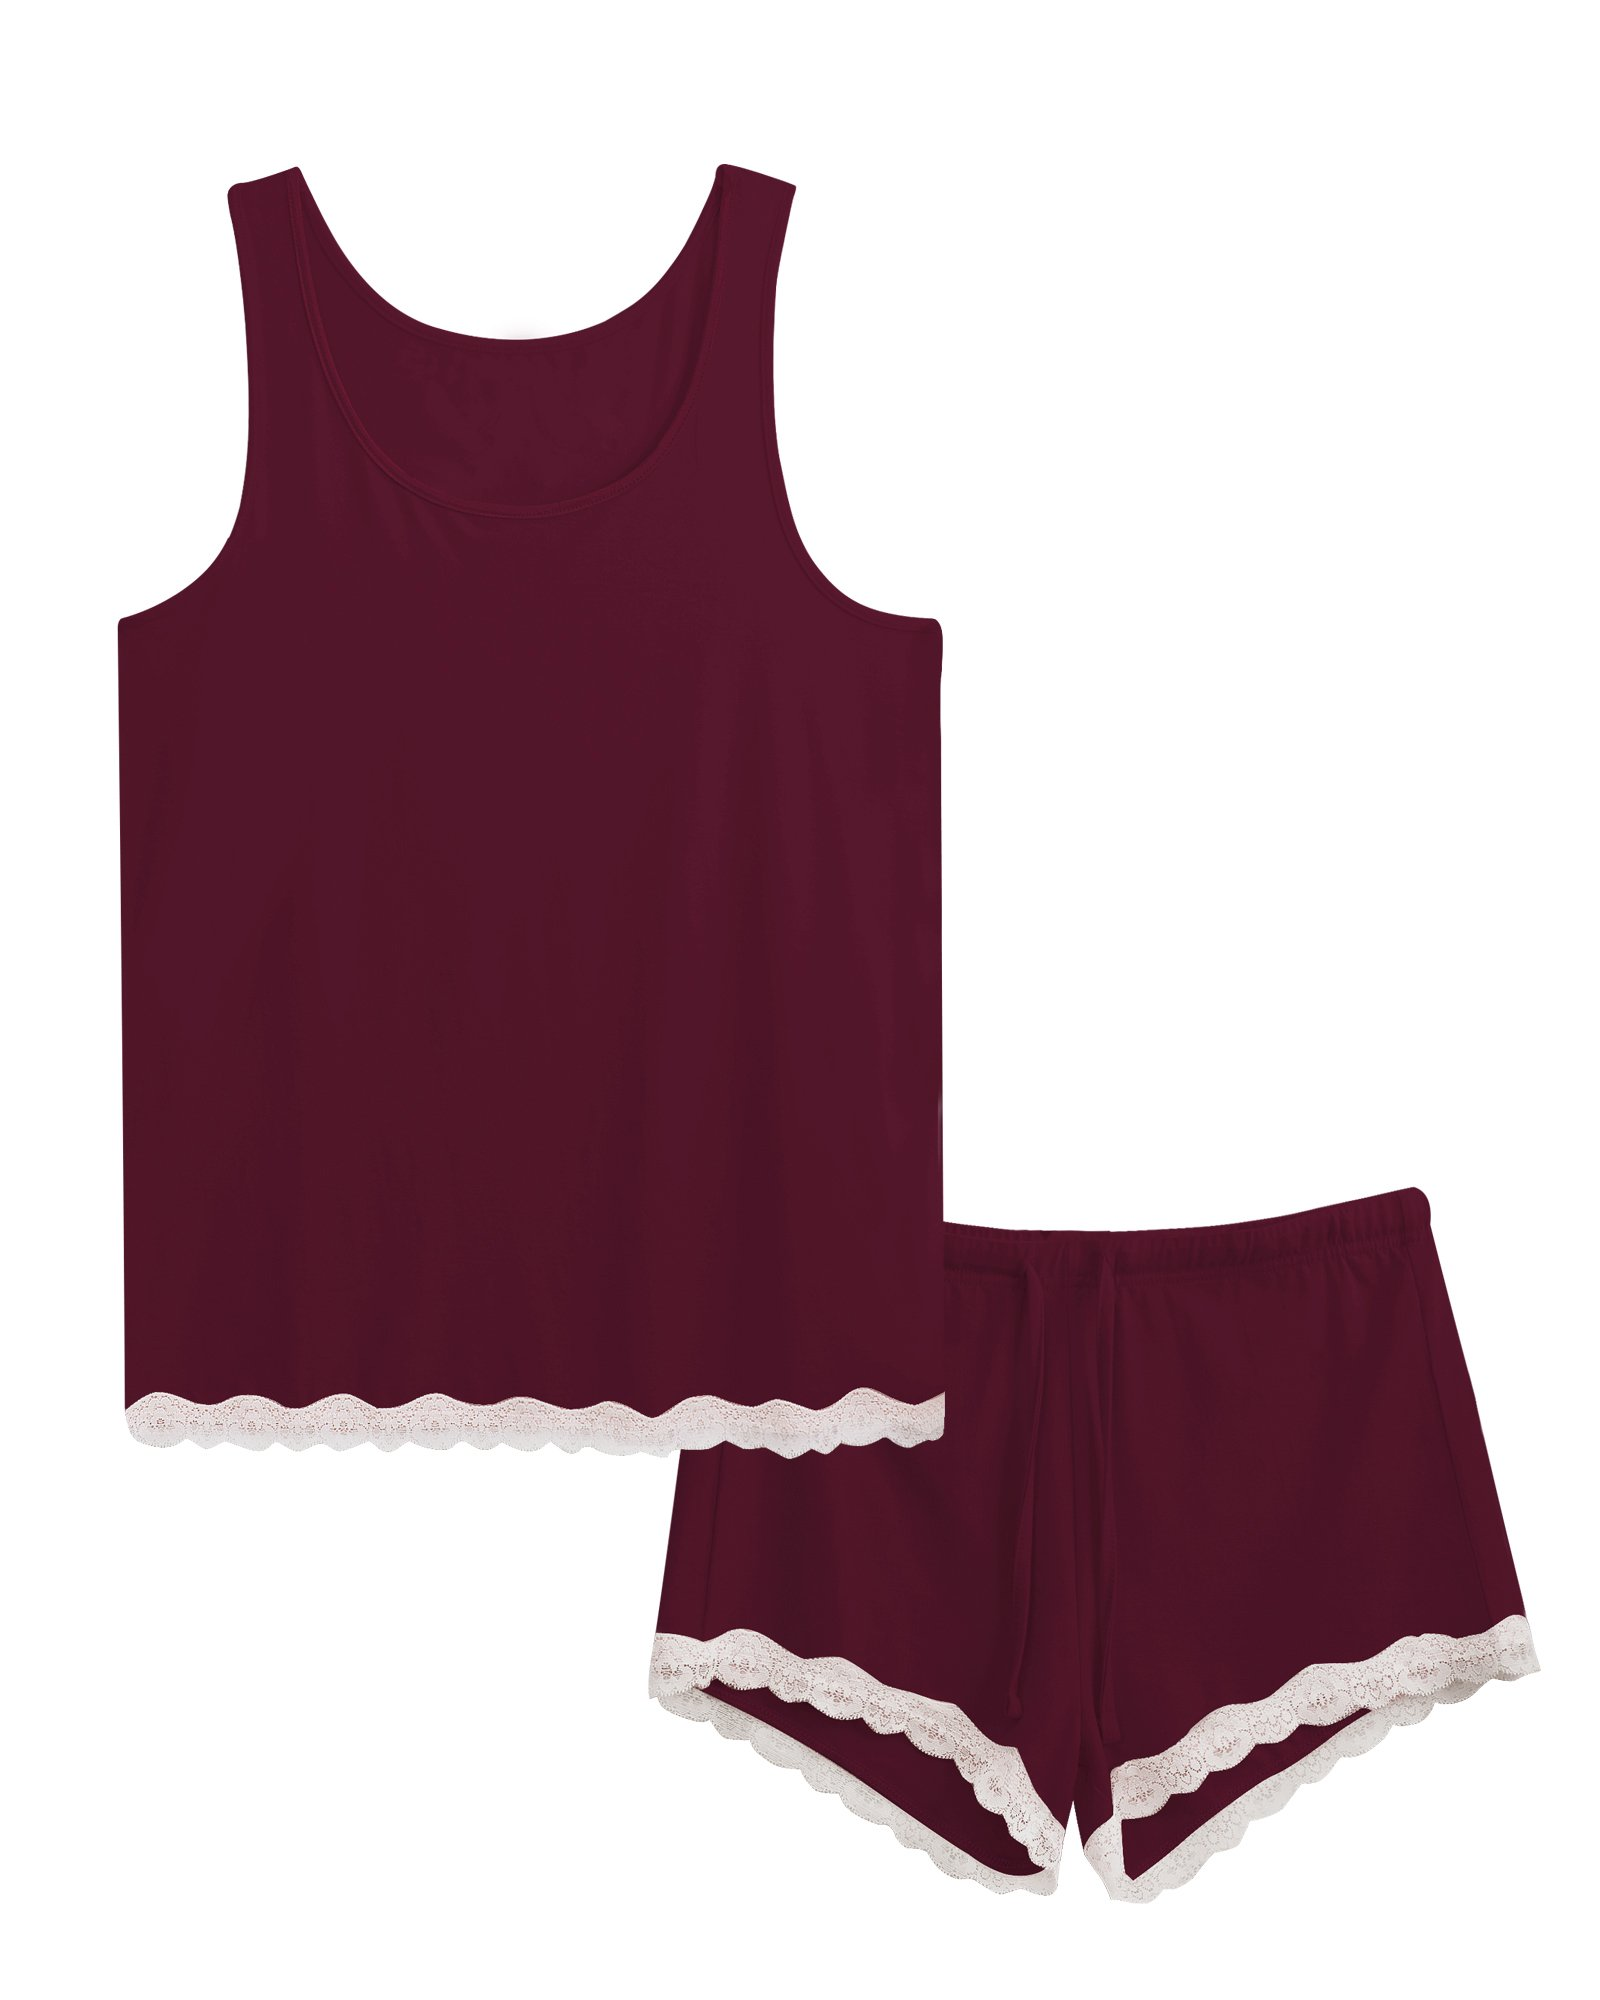 GYS Women's Bamboo Pajama Tank and Shorts Set (M, Carmine)